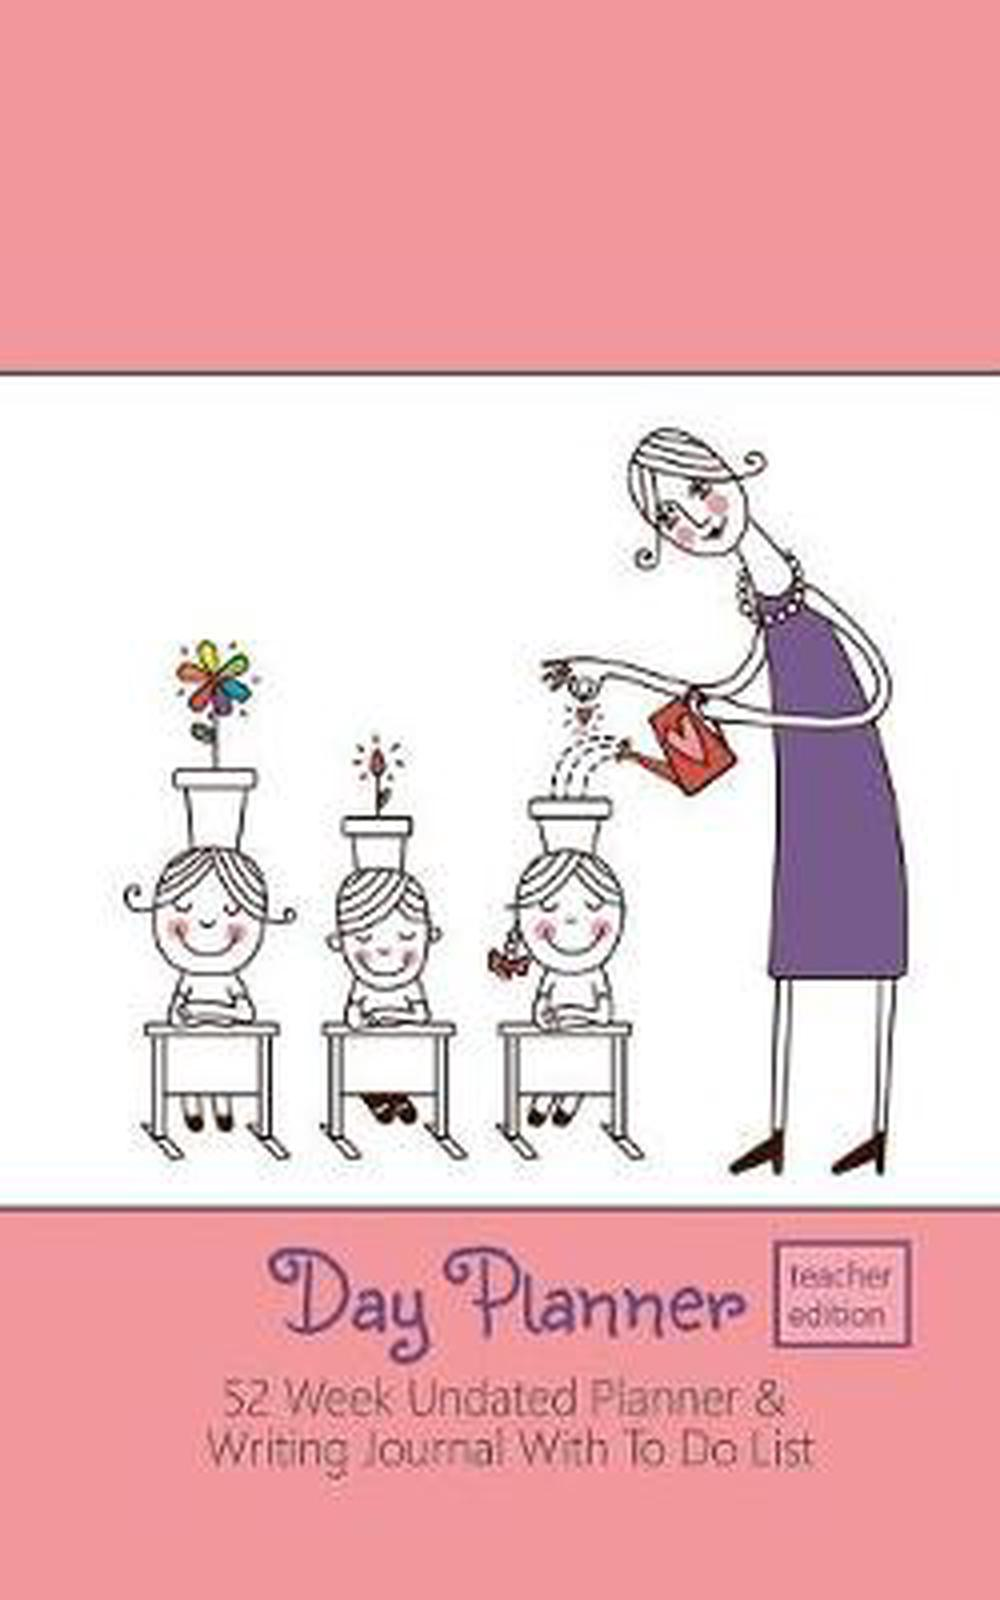 Details about Day Planner Teacher Edition by Journal Jungle Publishing  Paperback Book Free Shi